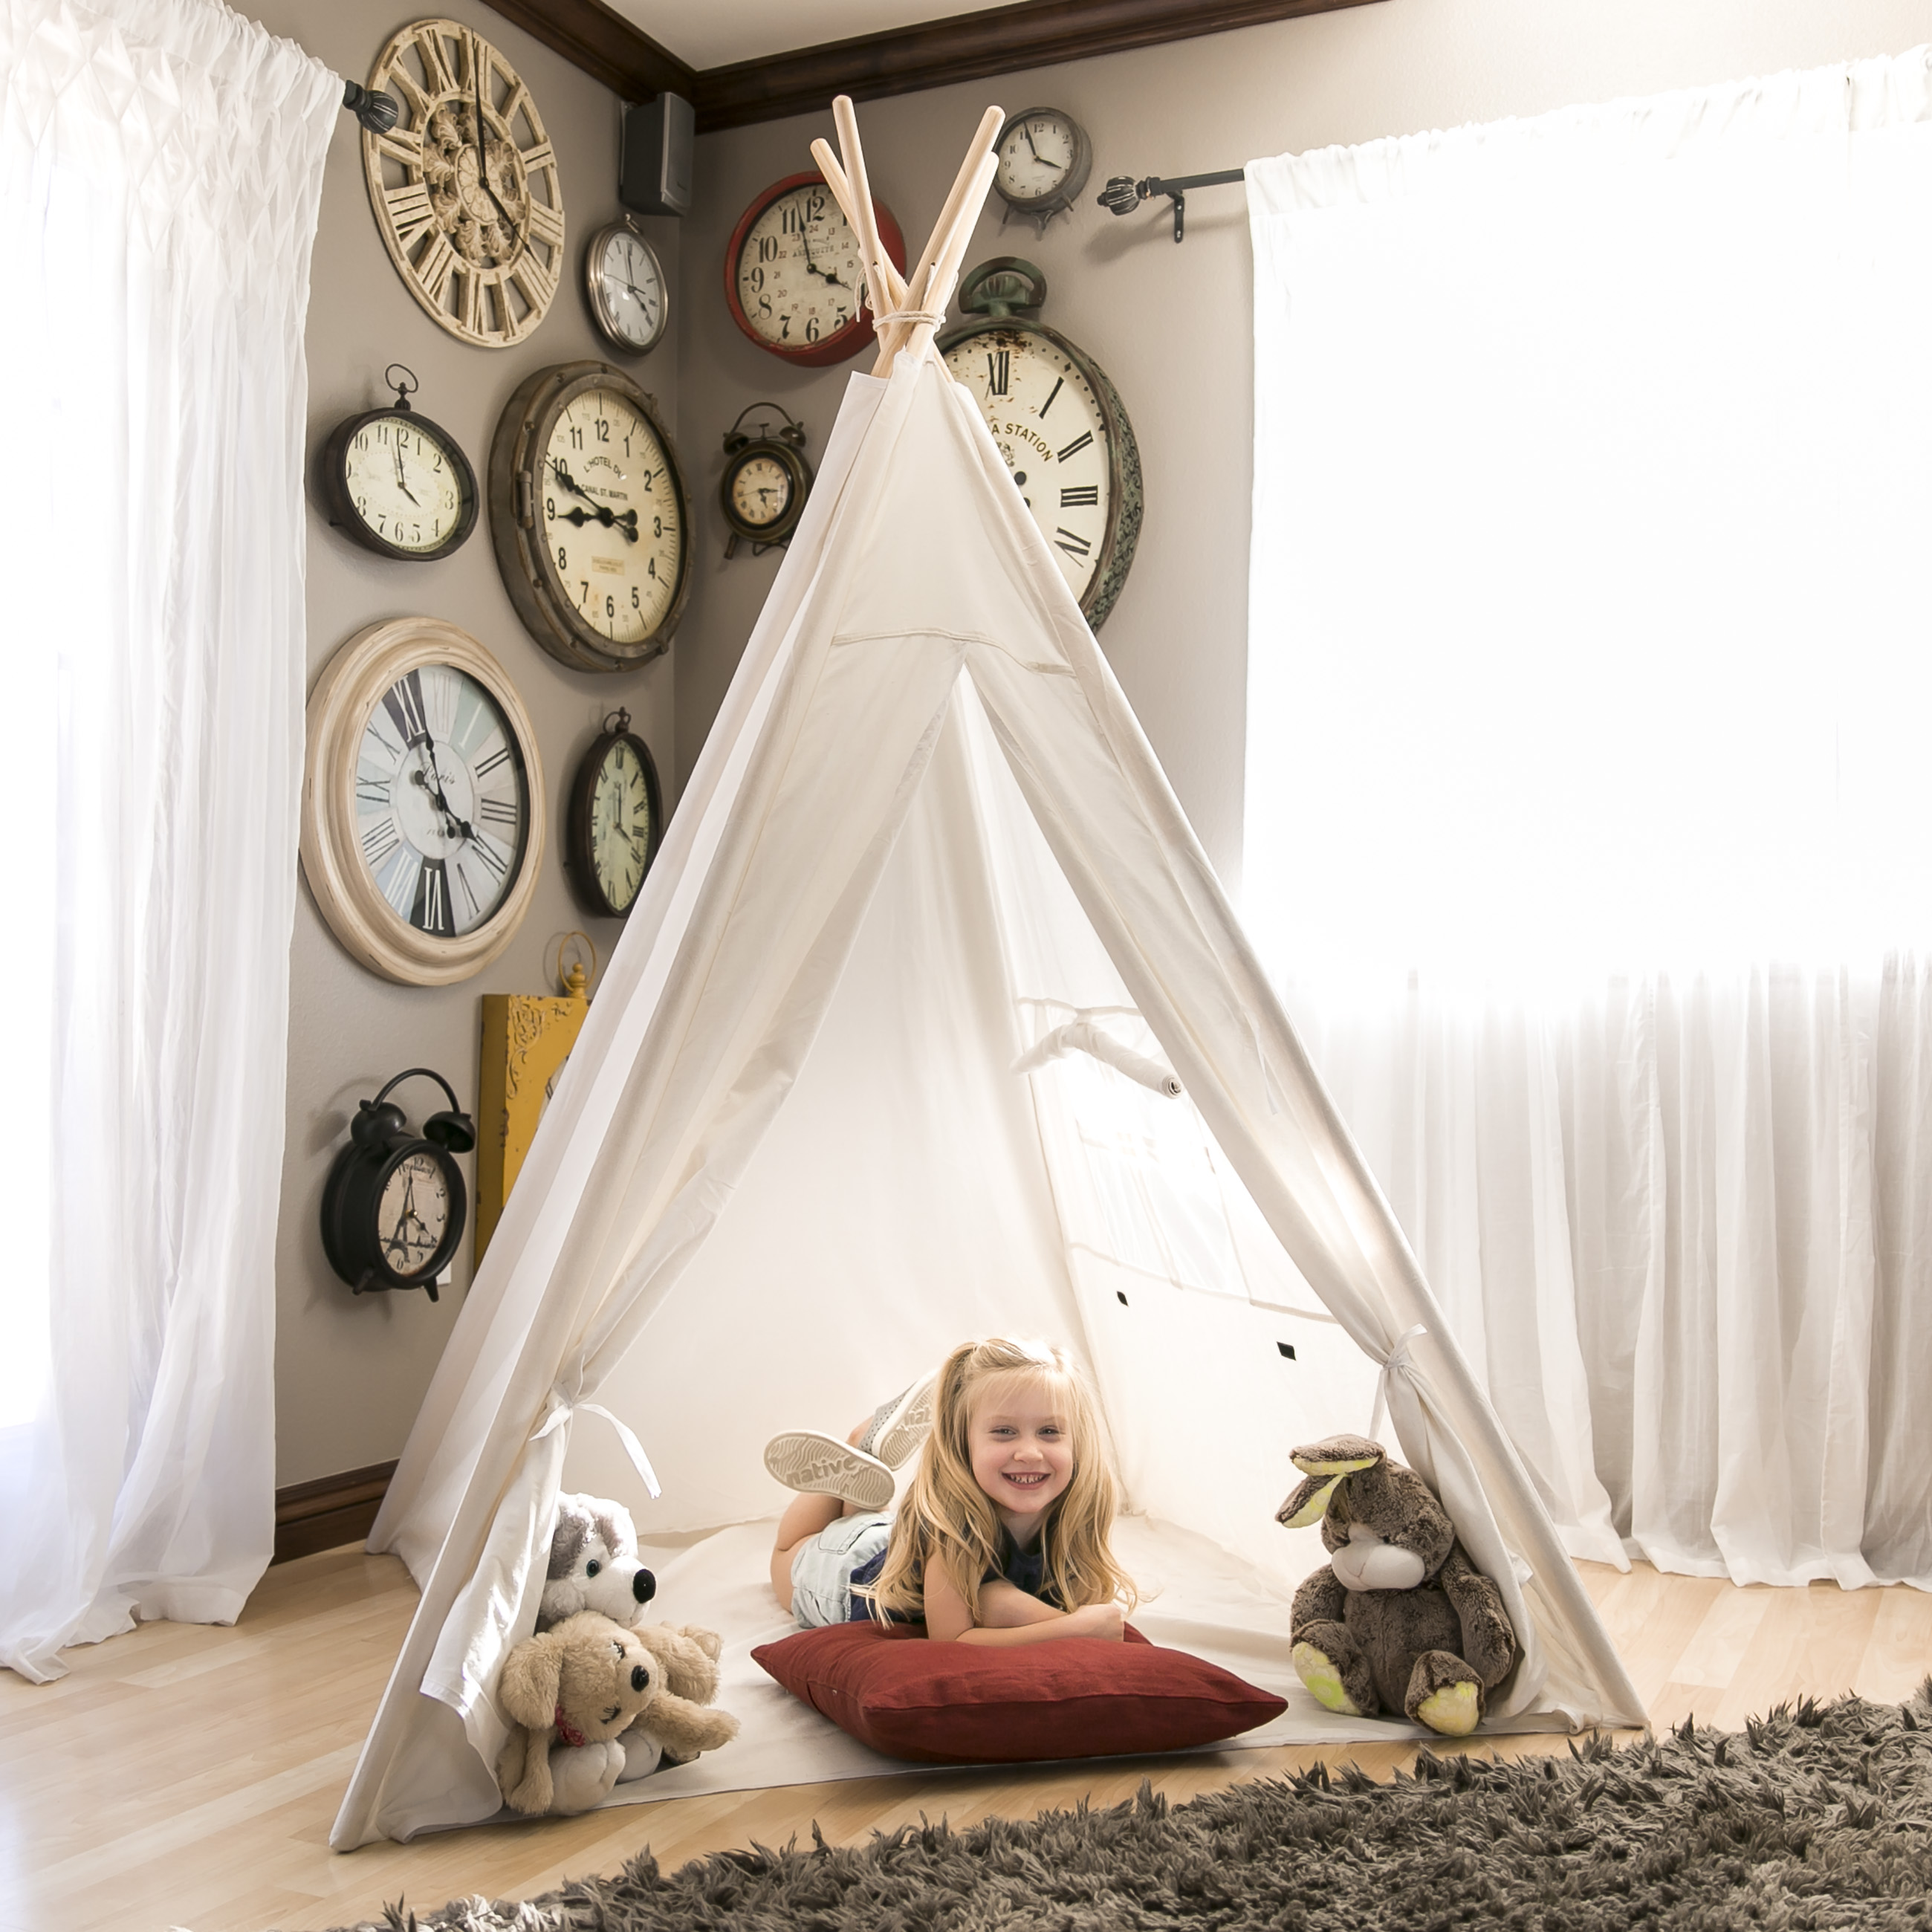 Teepee Kids Best Choice Products 6ft White Teepee Tent Kids Indian Canvas Playhouse Sleeping Dome W Carrying Bag White